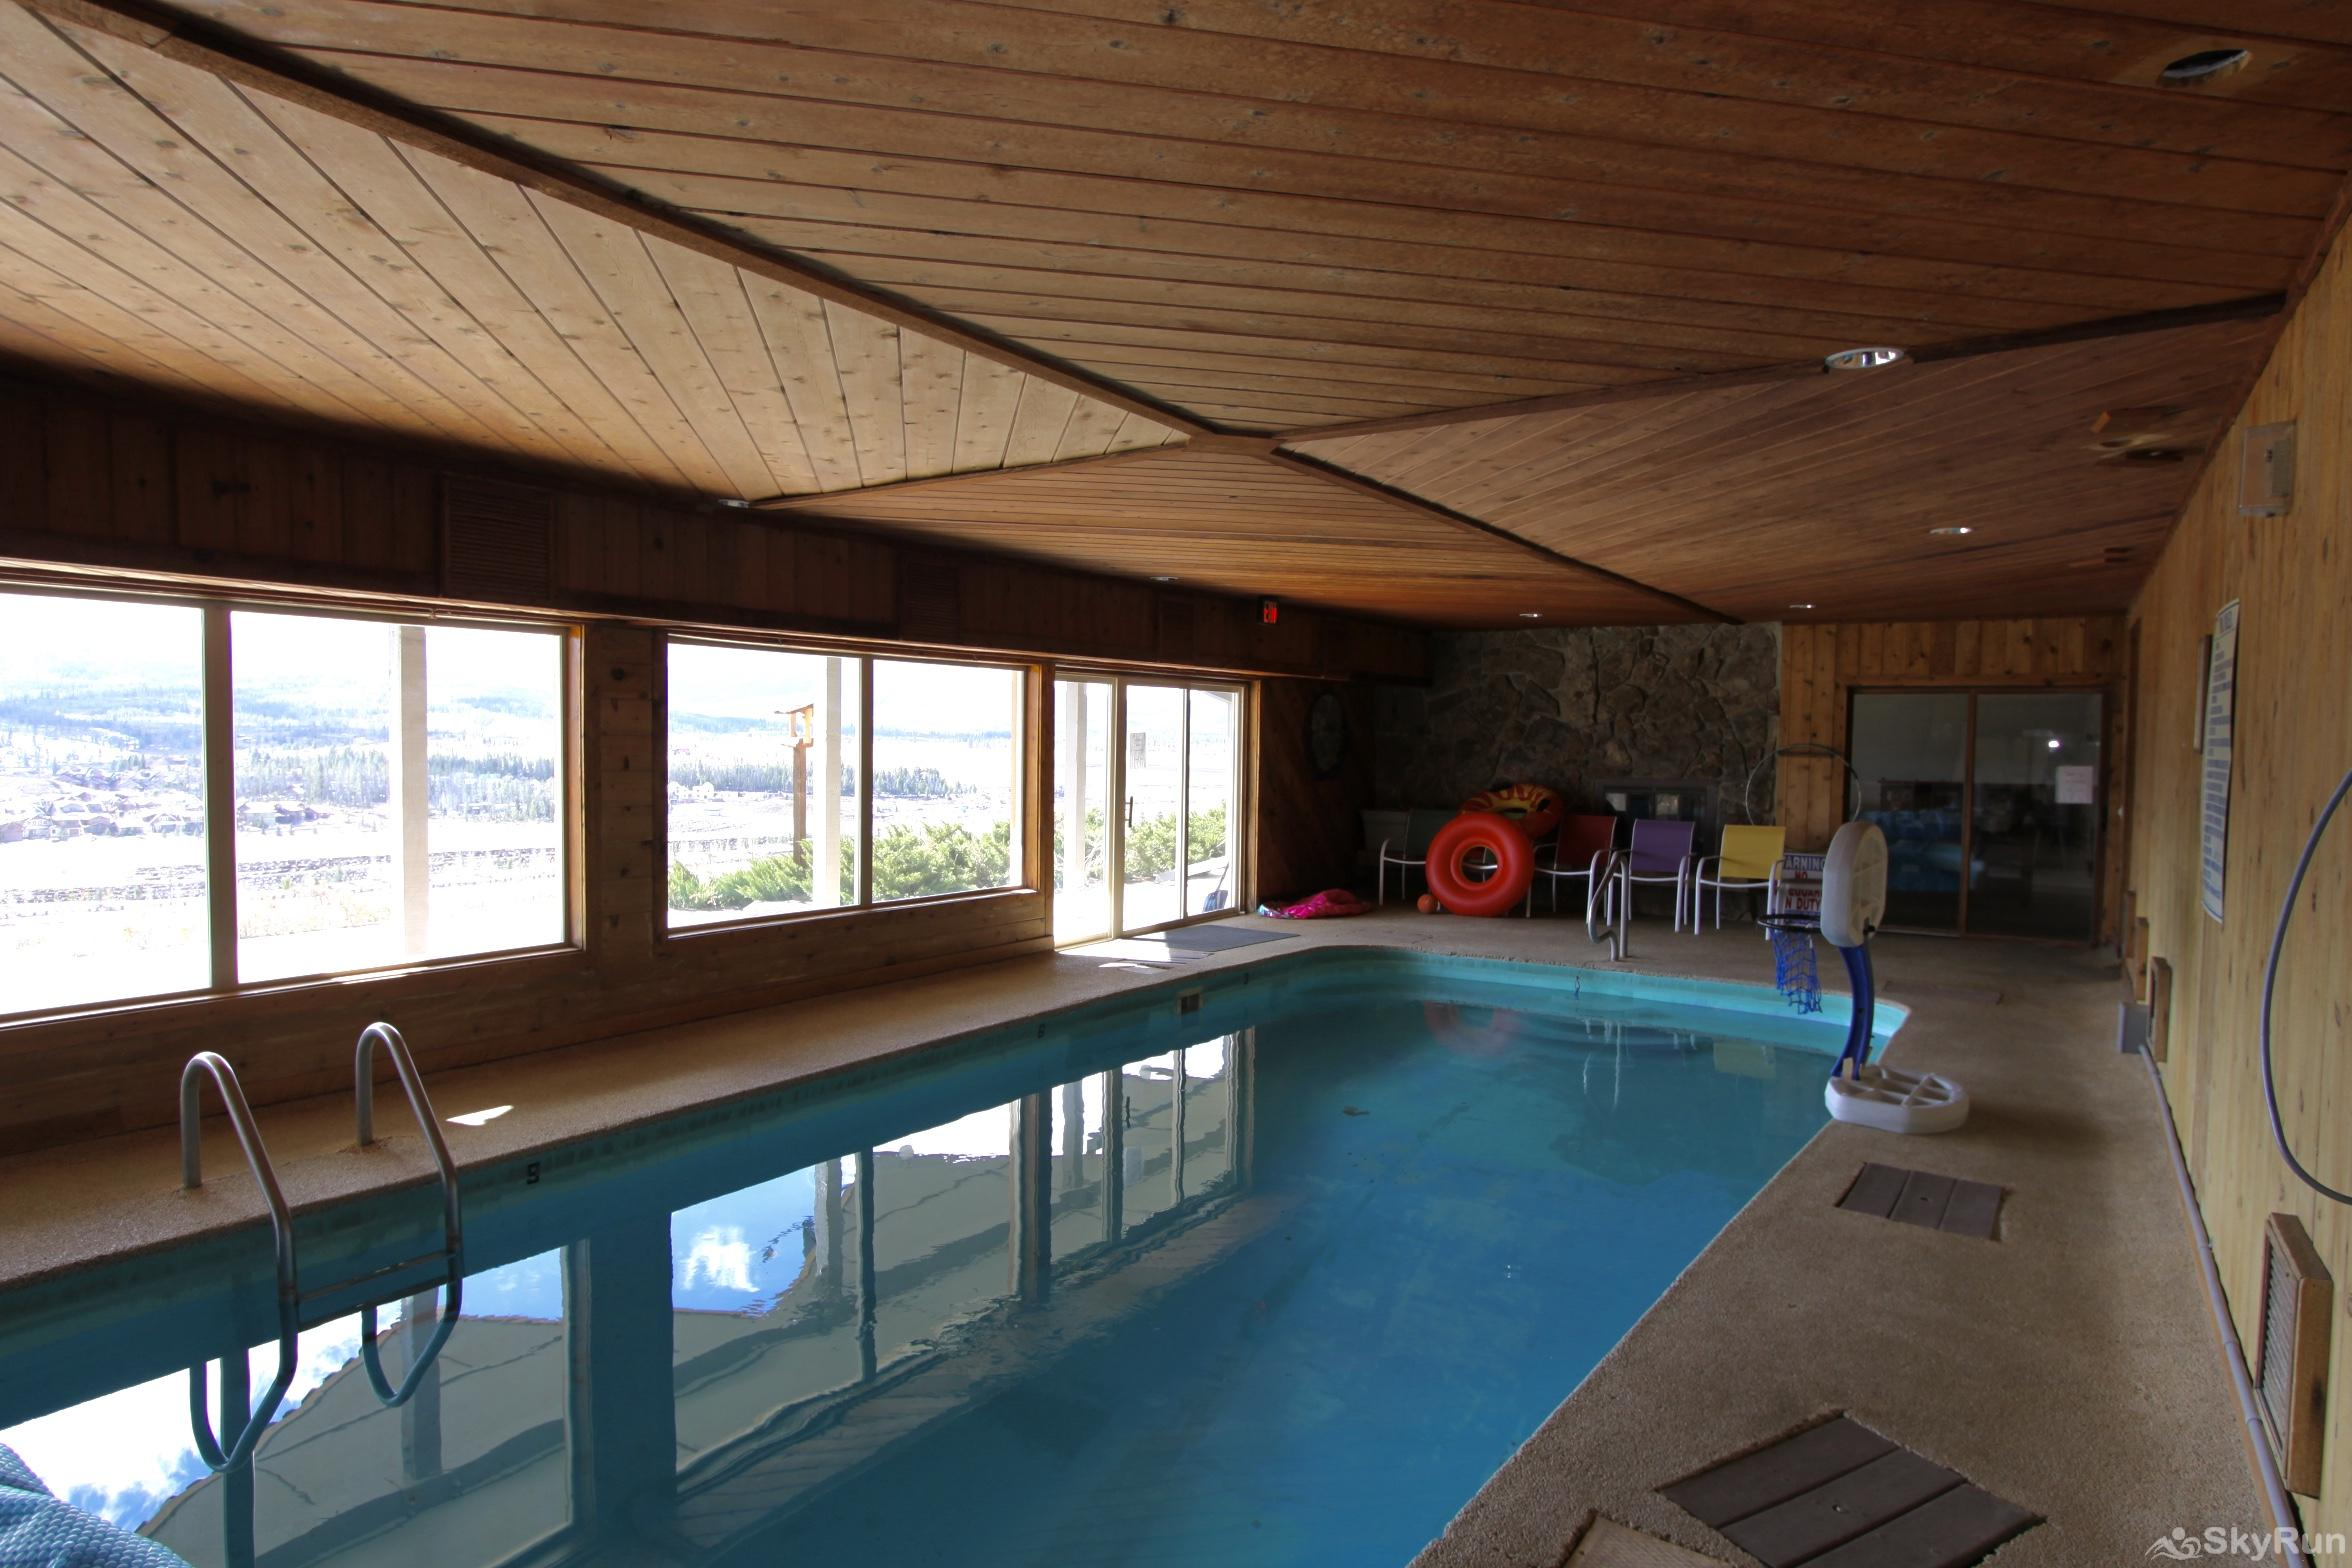 113B WPTC - Cranmer Rd Indoor Pool with a view